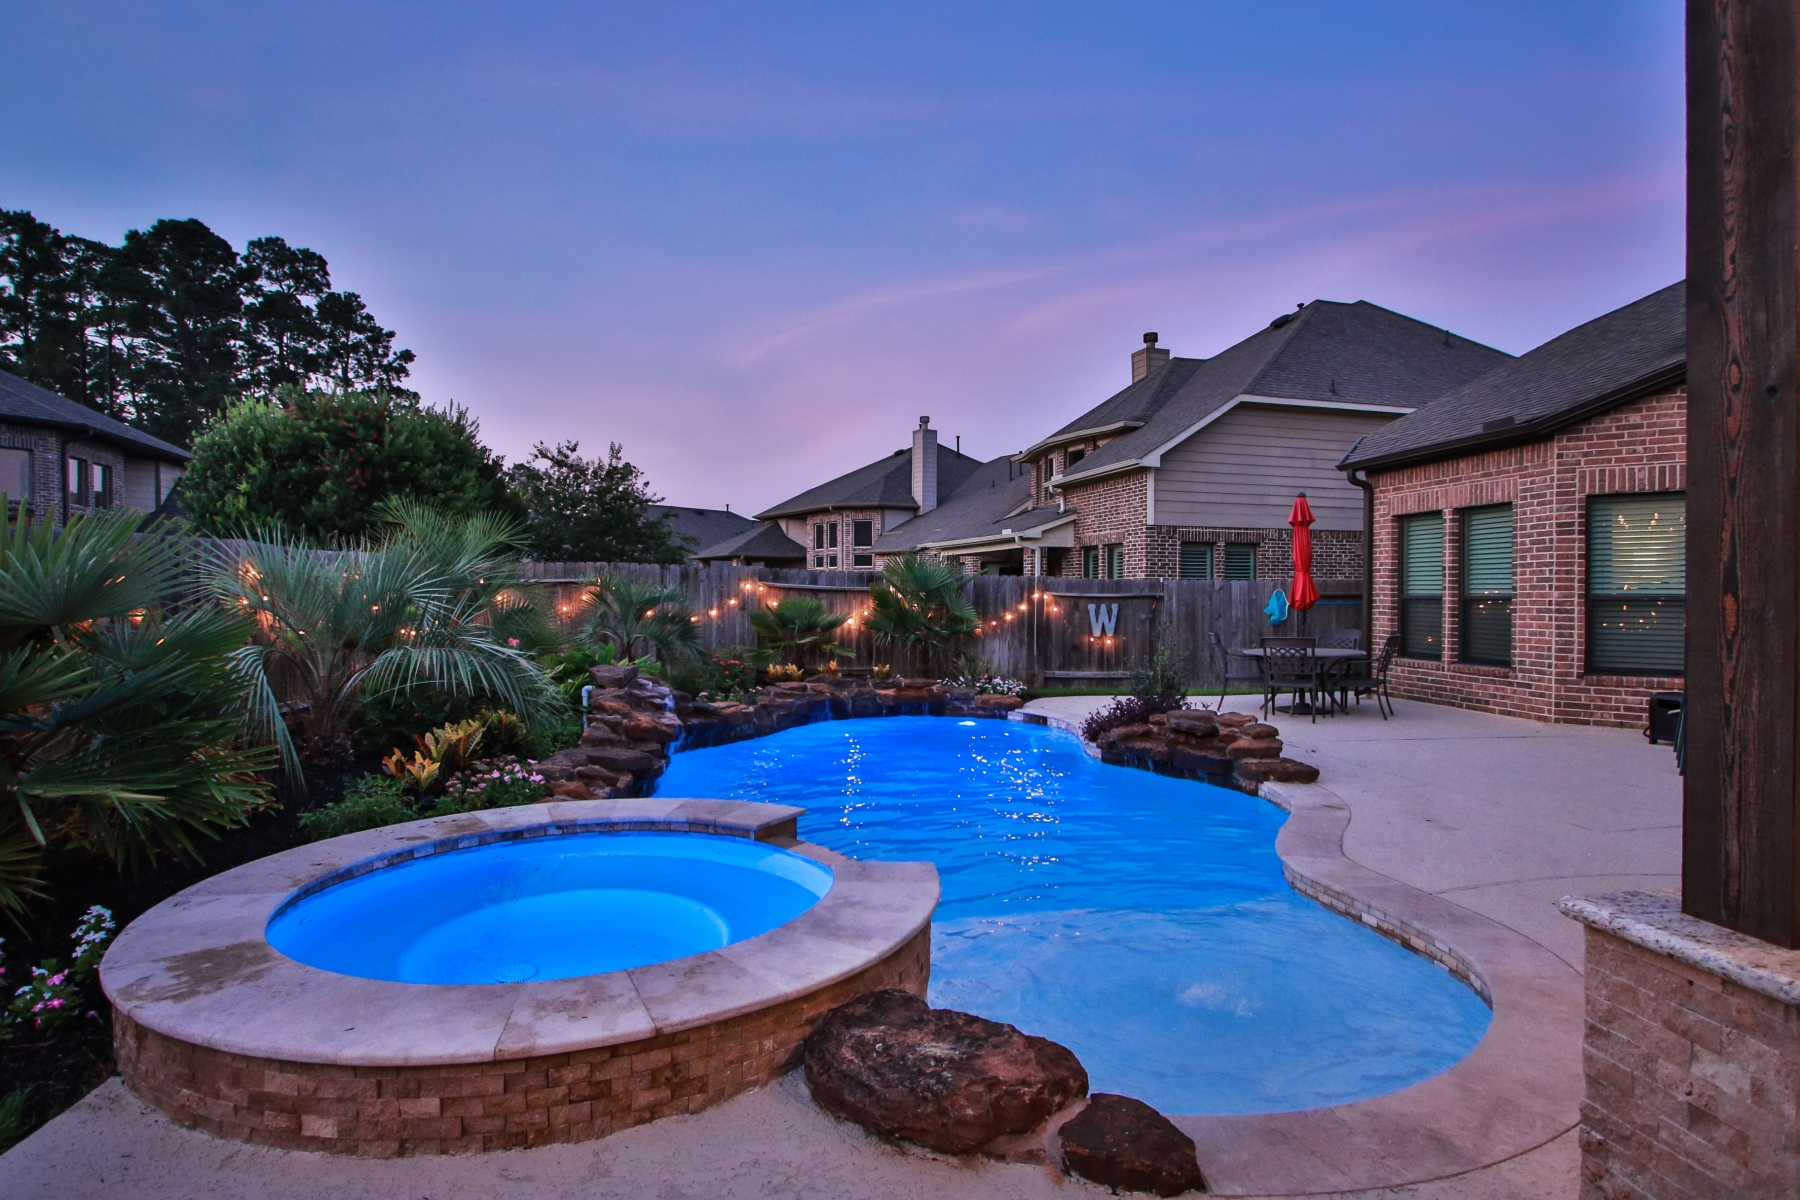 Freeform Pool with Raised Spa, Rock Waterfall, Custom Lighting at Night